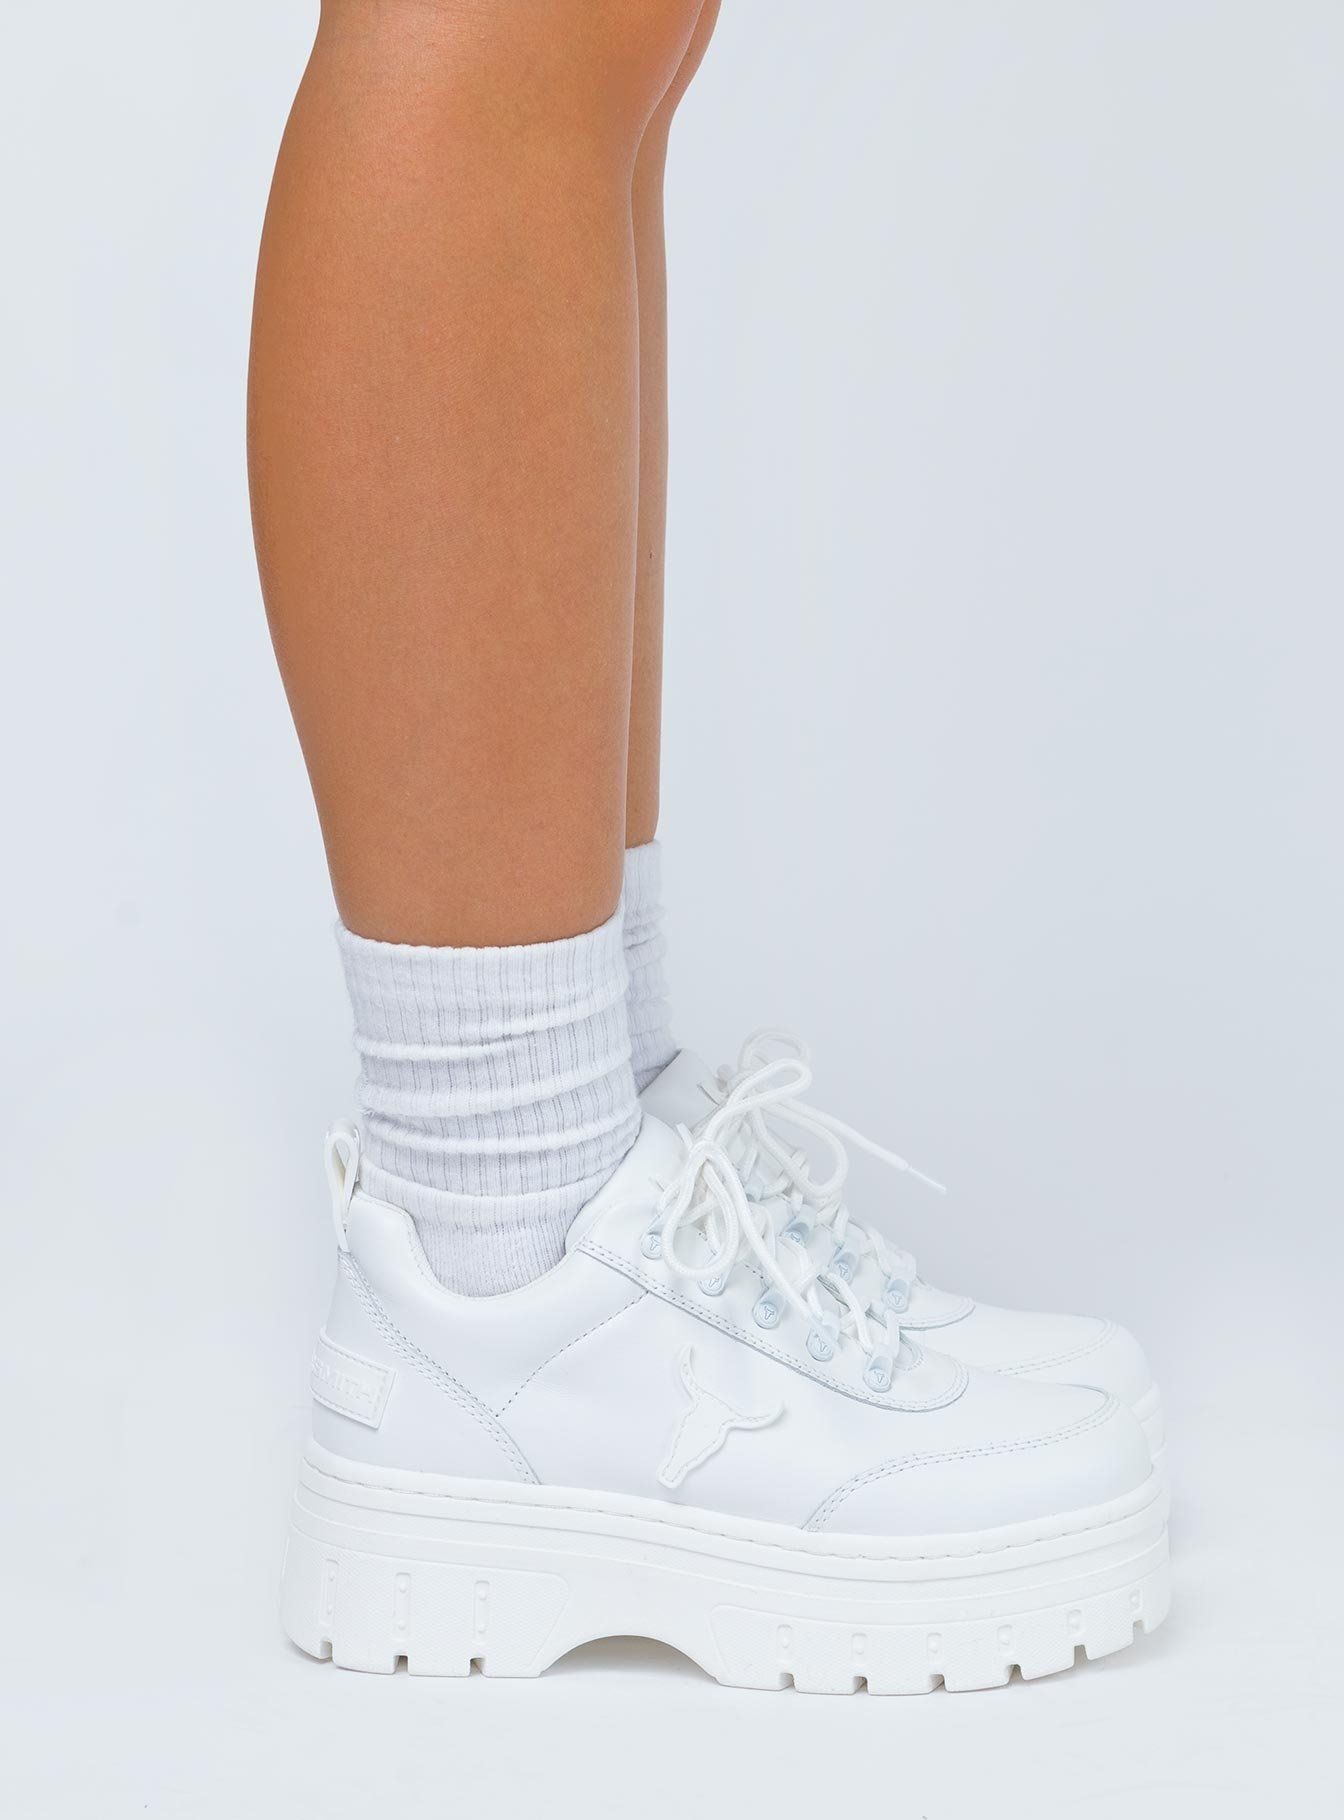 Windsor Smith Lux Sneakers White - US 7